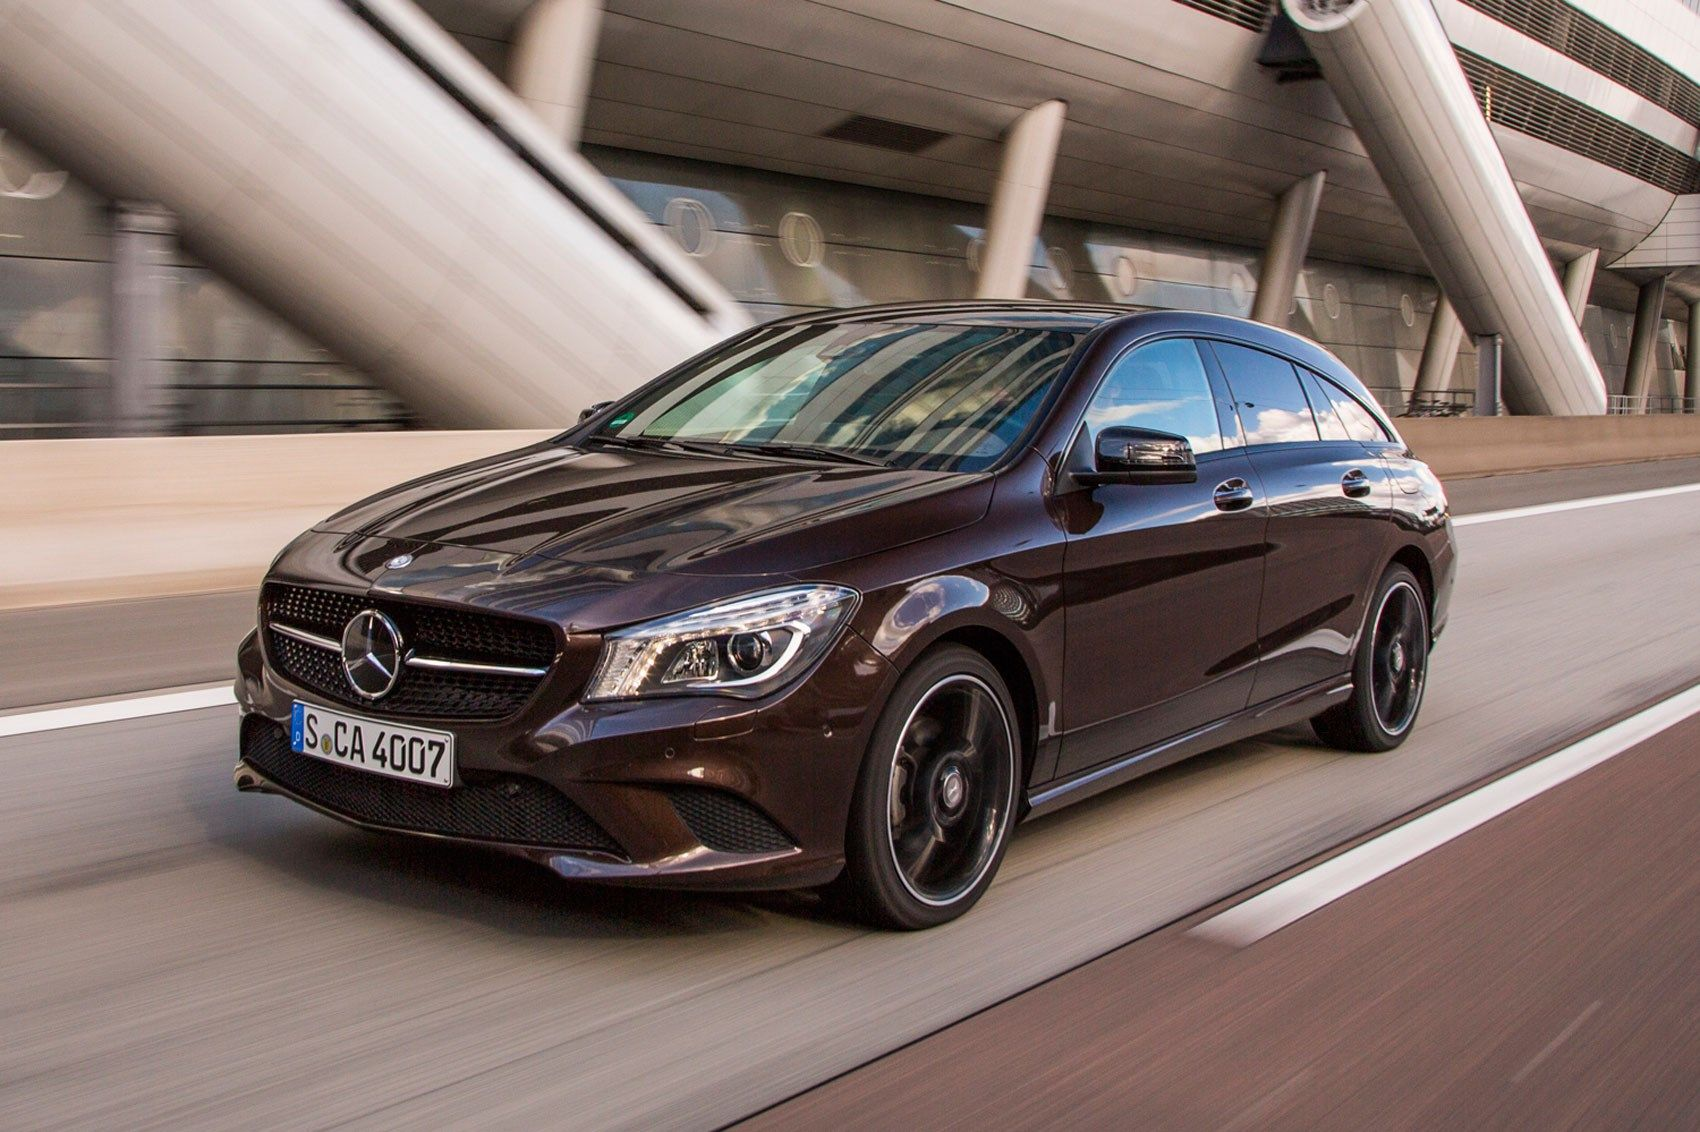 2018 mercedes cla 220 cdi sport specs and price http www autocarnewshq com 2018 mercedes cla 220 cdi sport specs and mercedes shooting brake mercedes benz 2018 mercedes cla 220 cdi sport specs